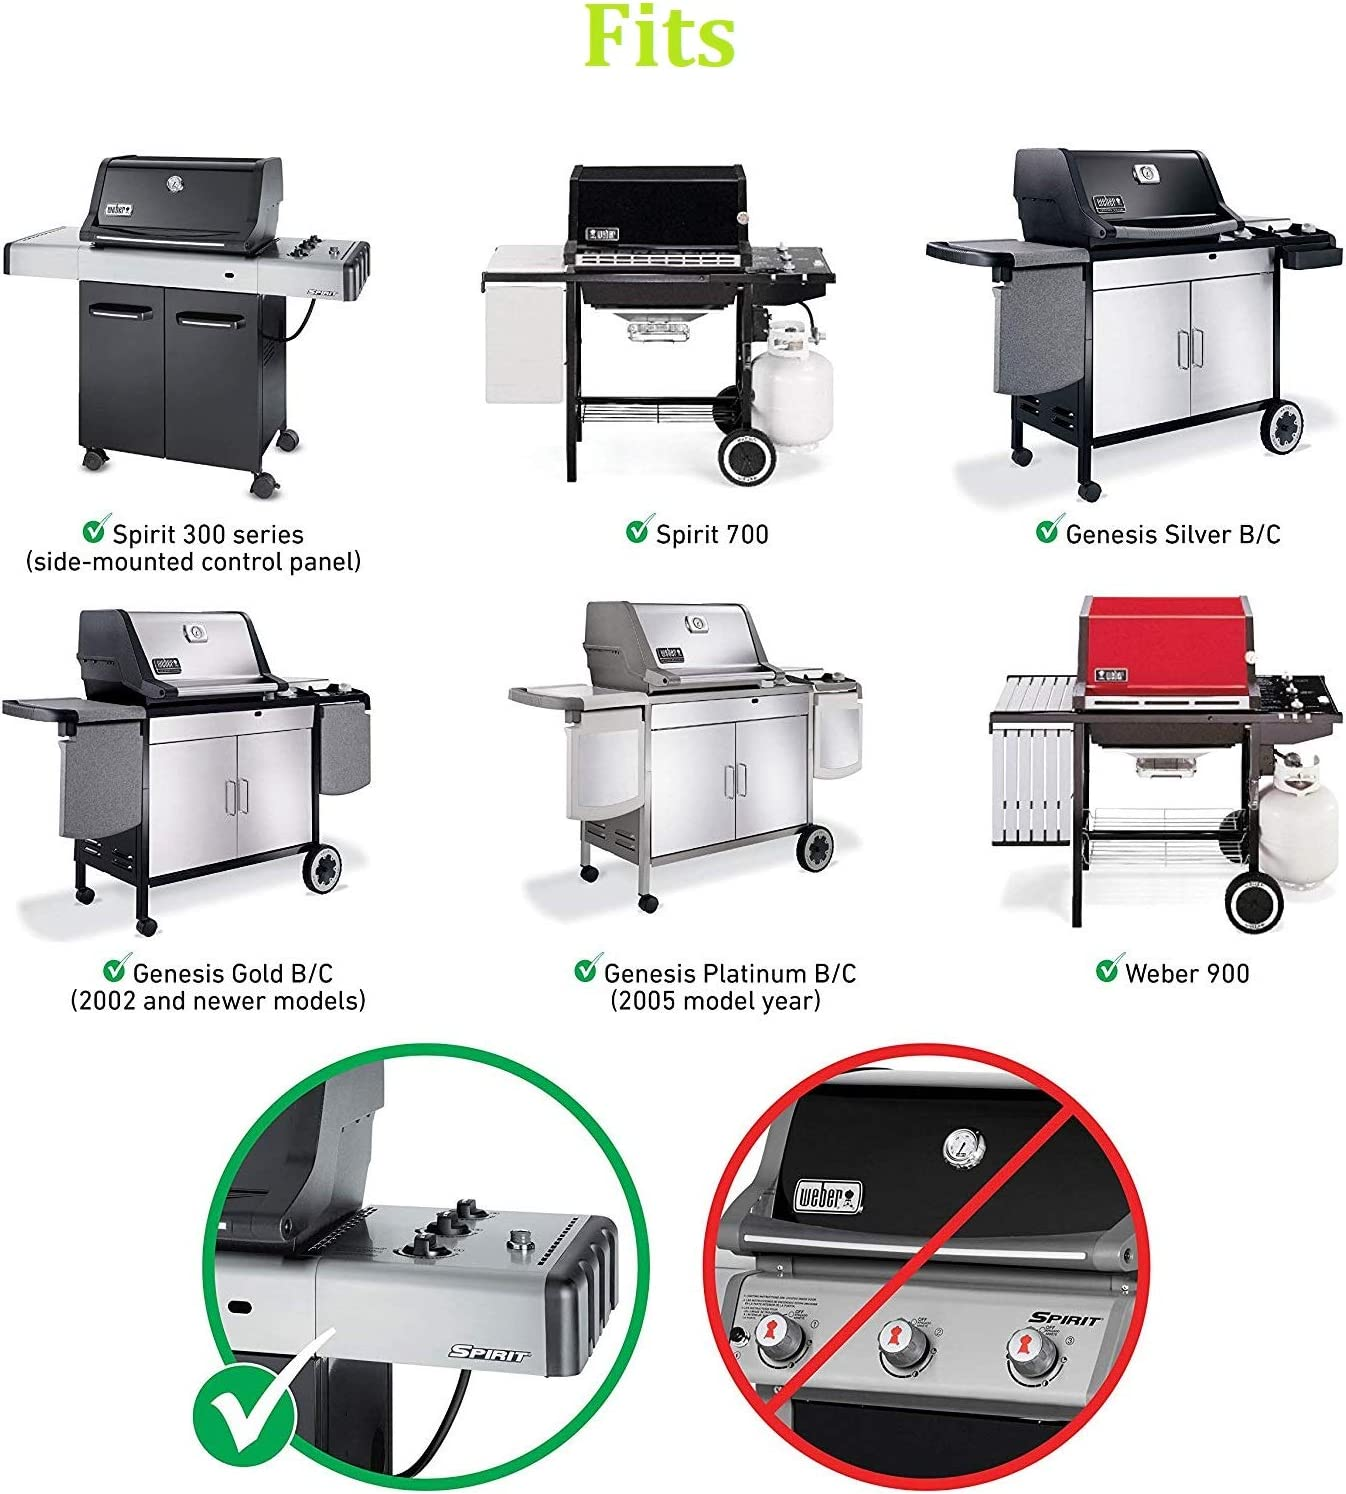 with Side-Mounted Control Panel Hongso 17.5 Inches Grill Grates and 22.5 Inches Flavorizer Bars Bundle for Weber Spirit 300 Series